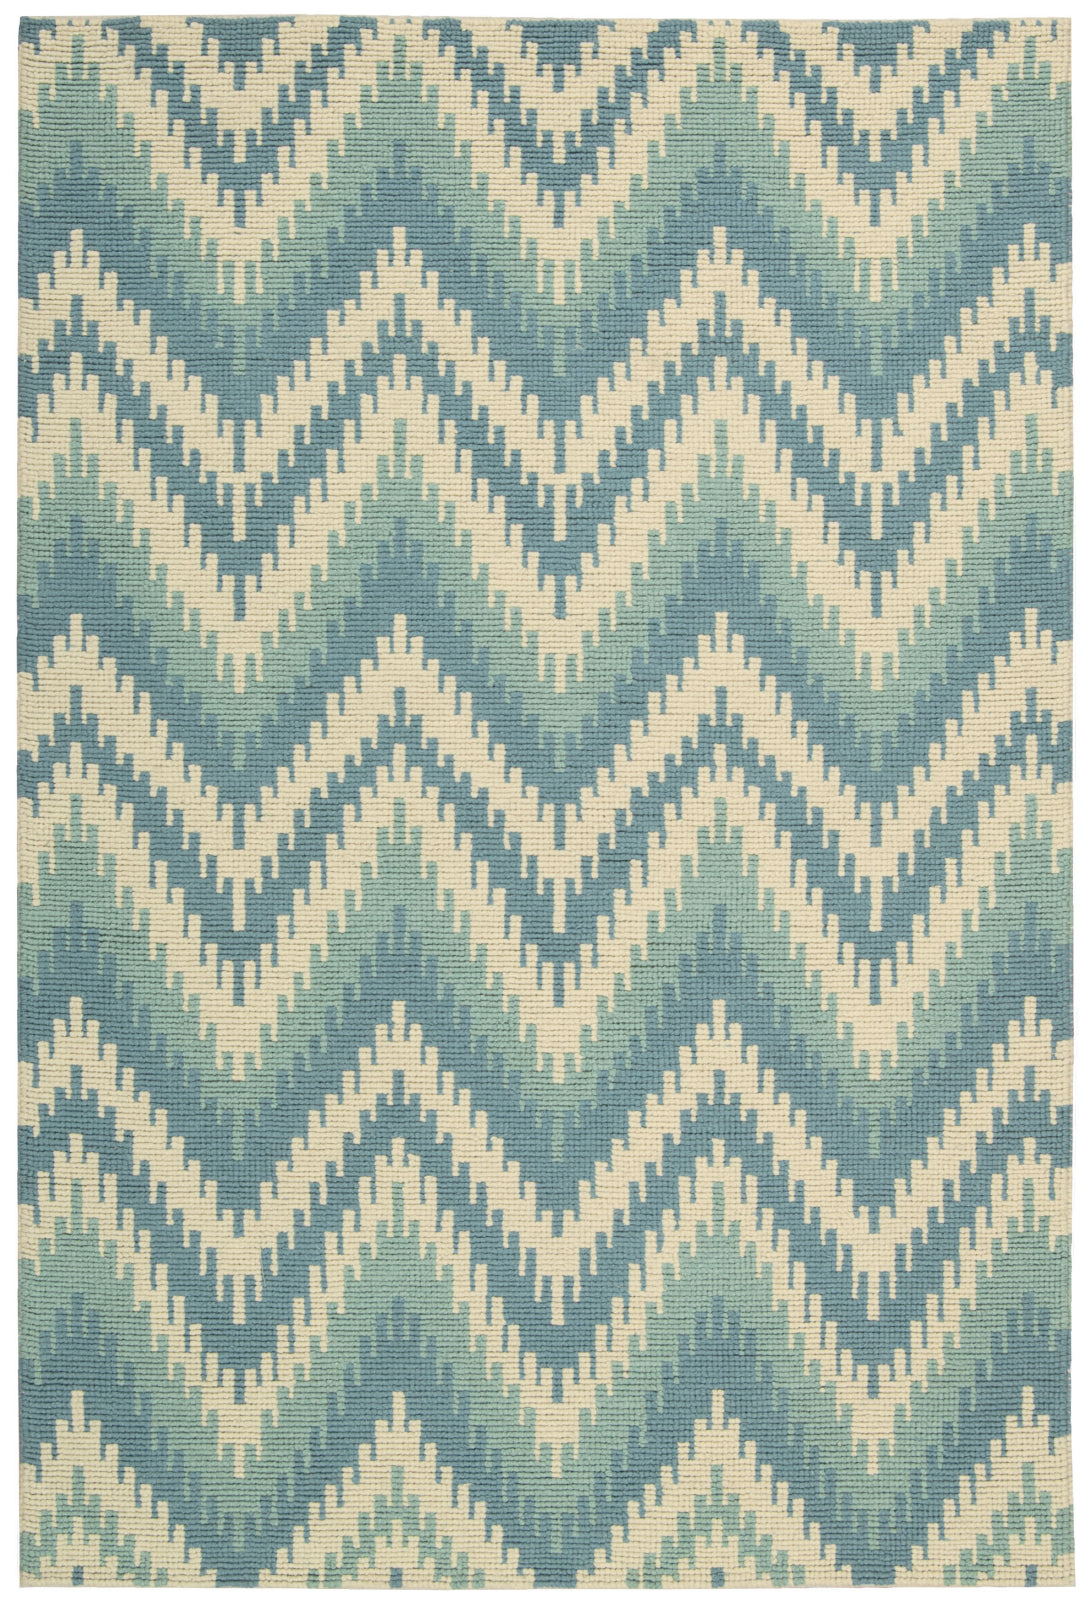 Nourison Prism PRI28 Pacific Area Rug by Barclay Butera main image